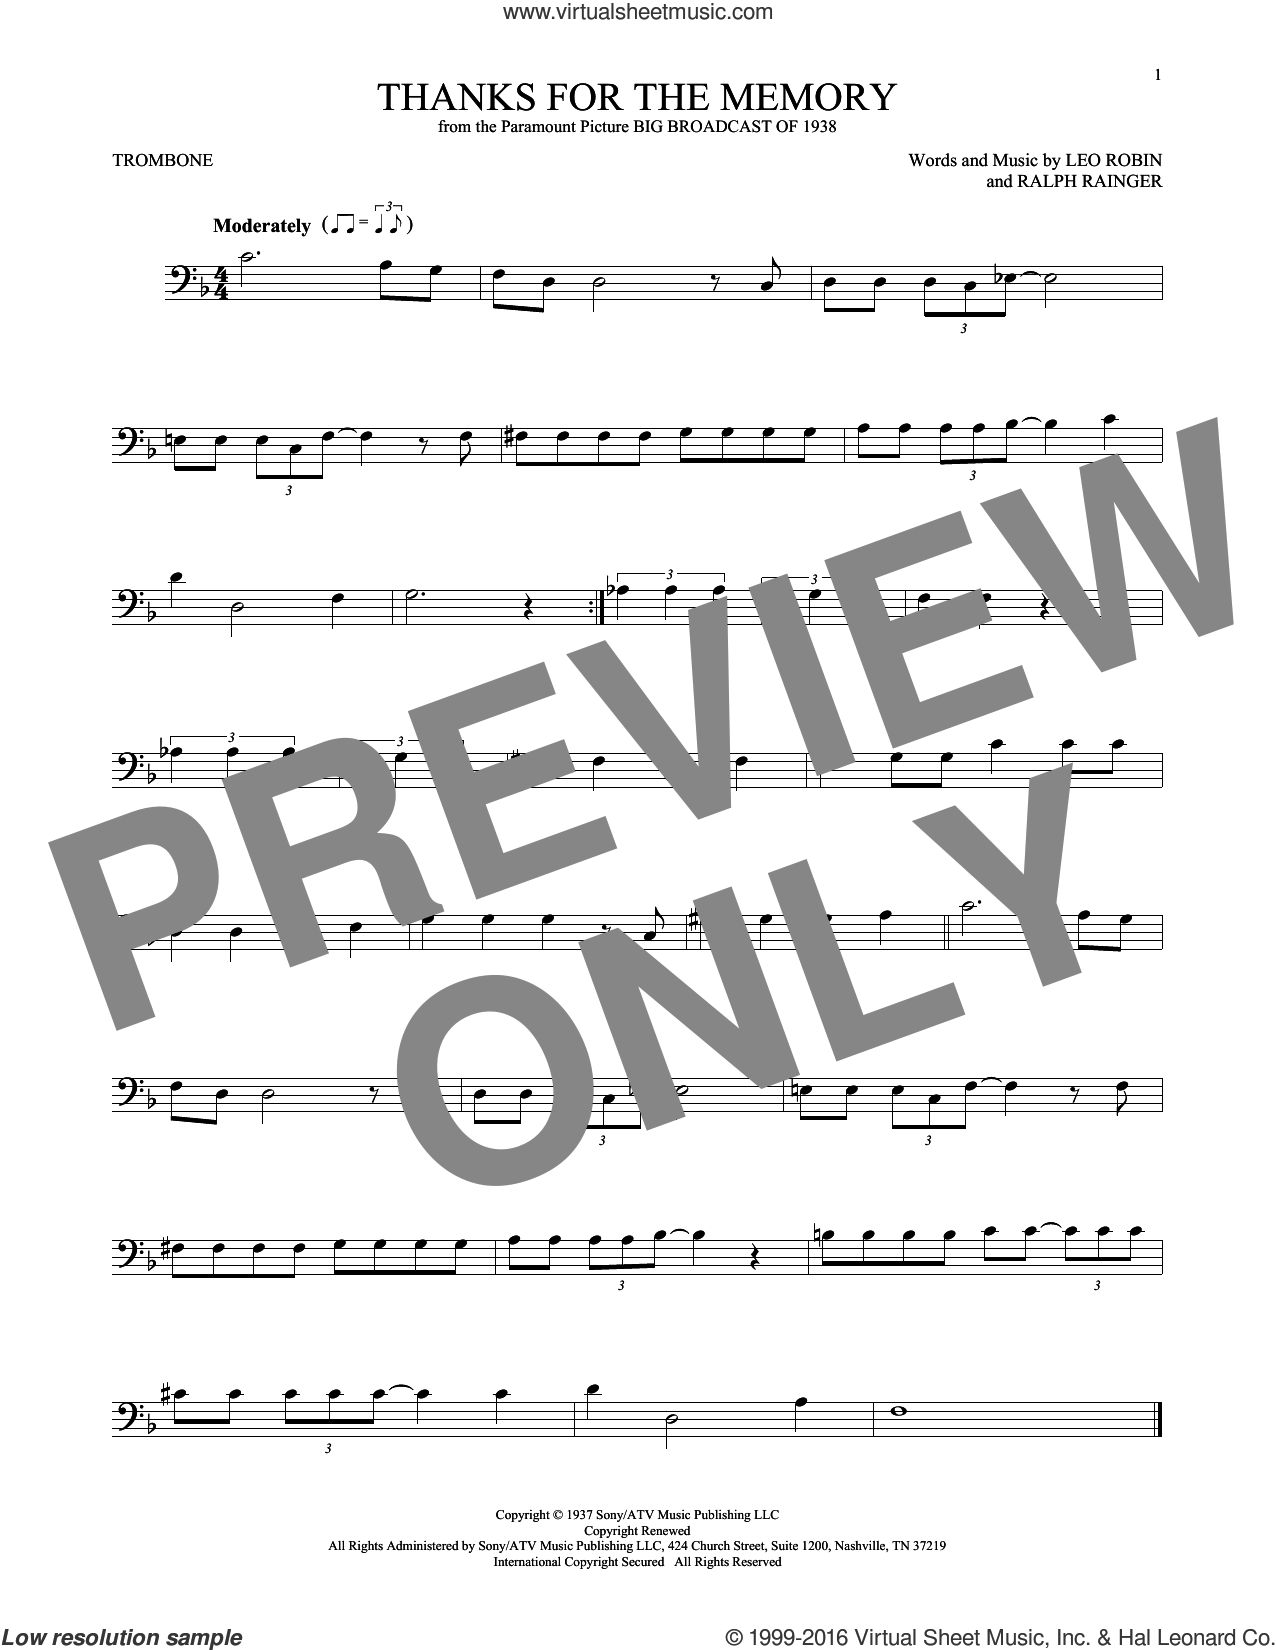 Thanks For The Memory sheet music for trombone solo by Leo Robin, Dave McKenna, Mildred Bailey, Shep Fields and Ralph Rainger, intermediate skill level